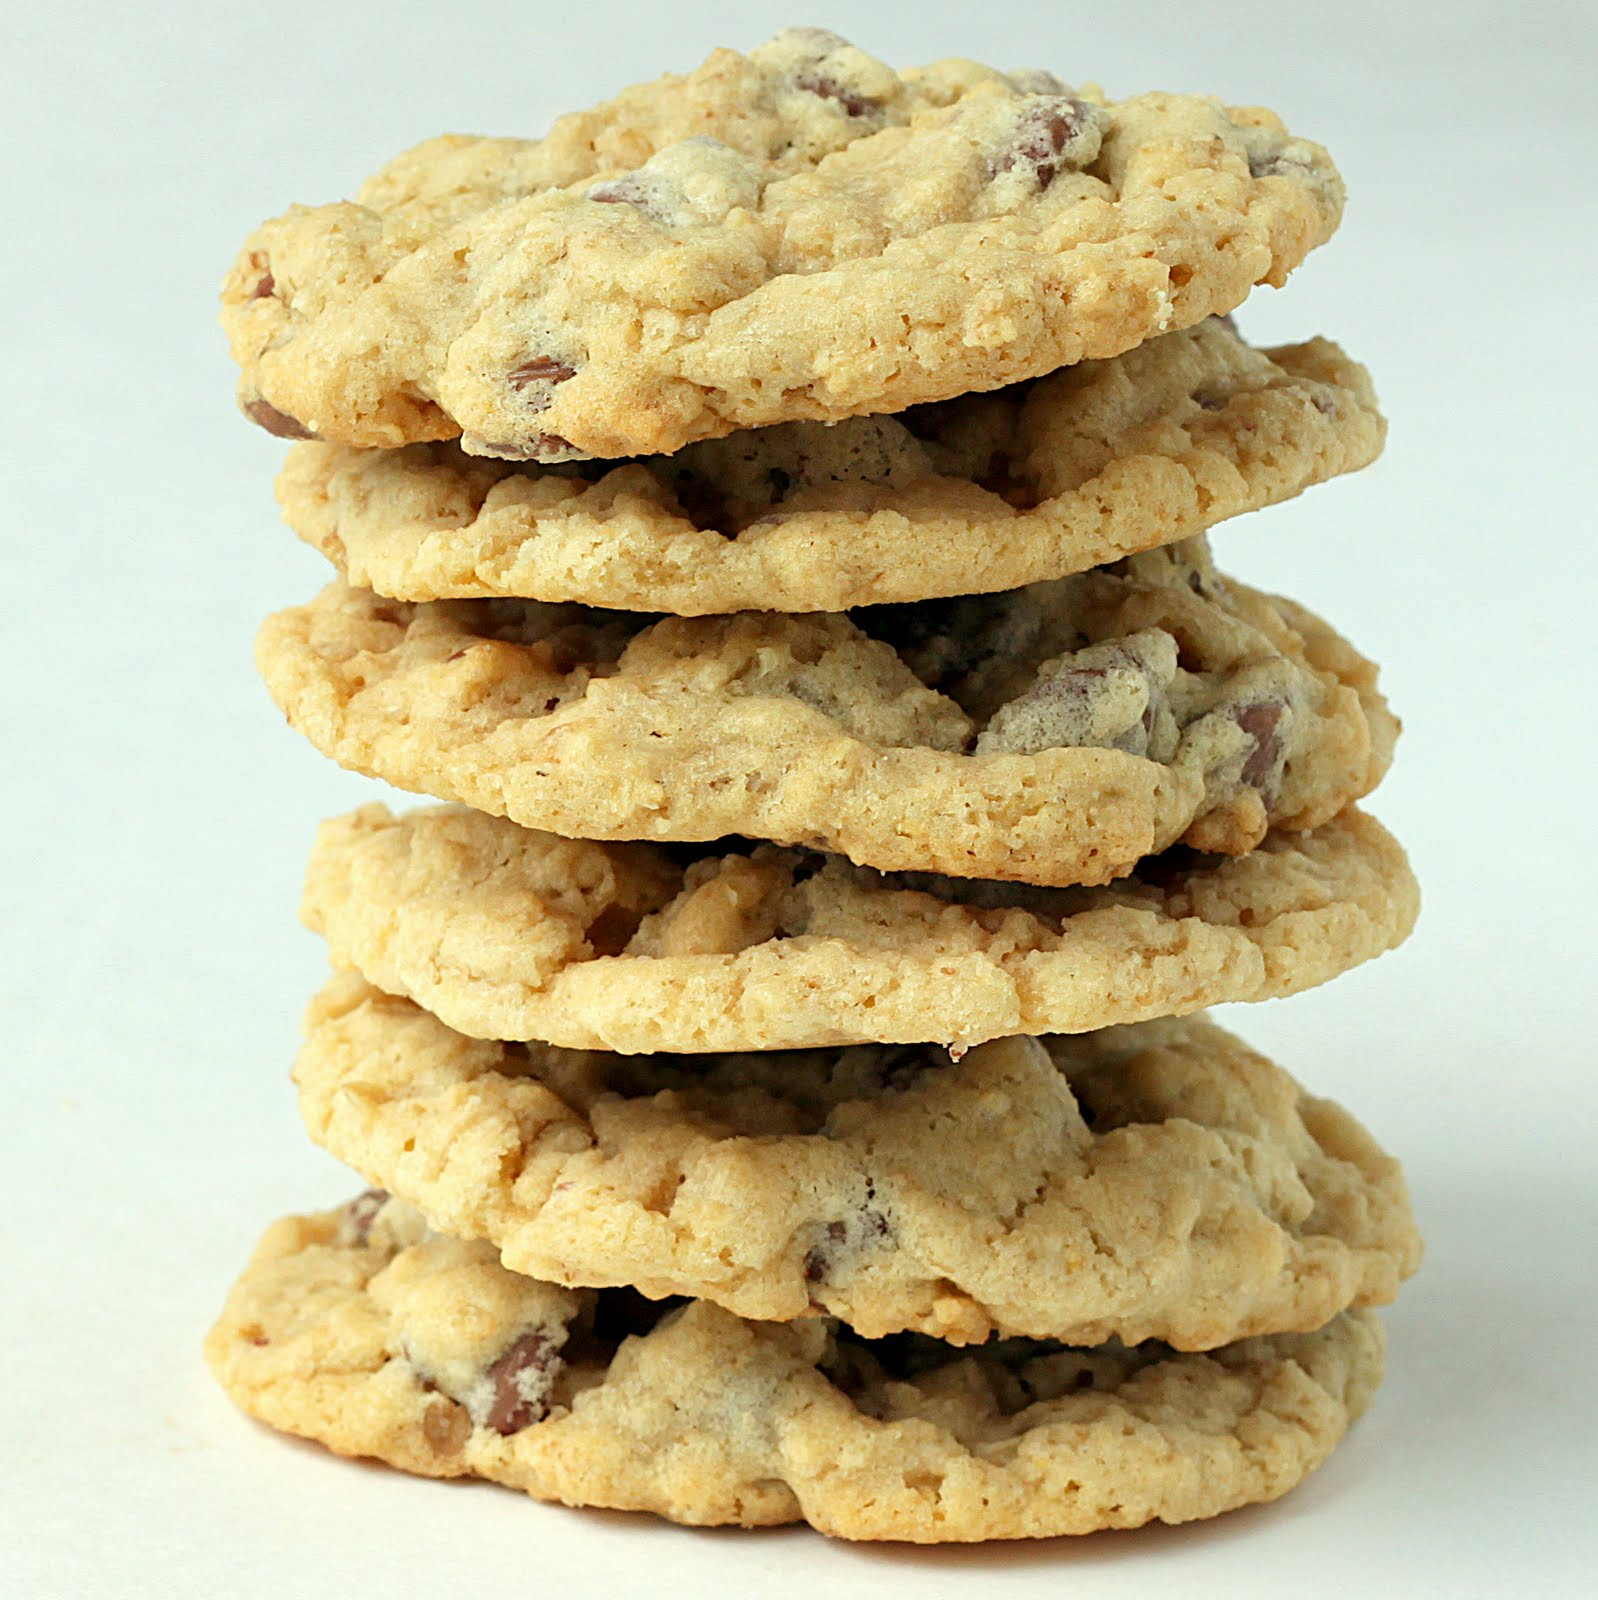 chocolate chip oatmeal chocolate chip chocolate chip oatmeal cookies ...